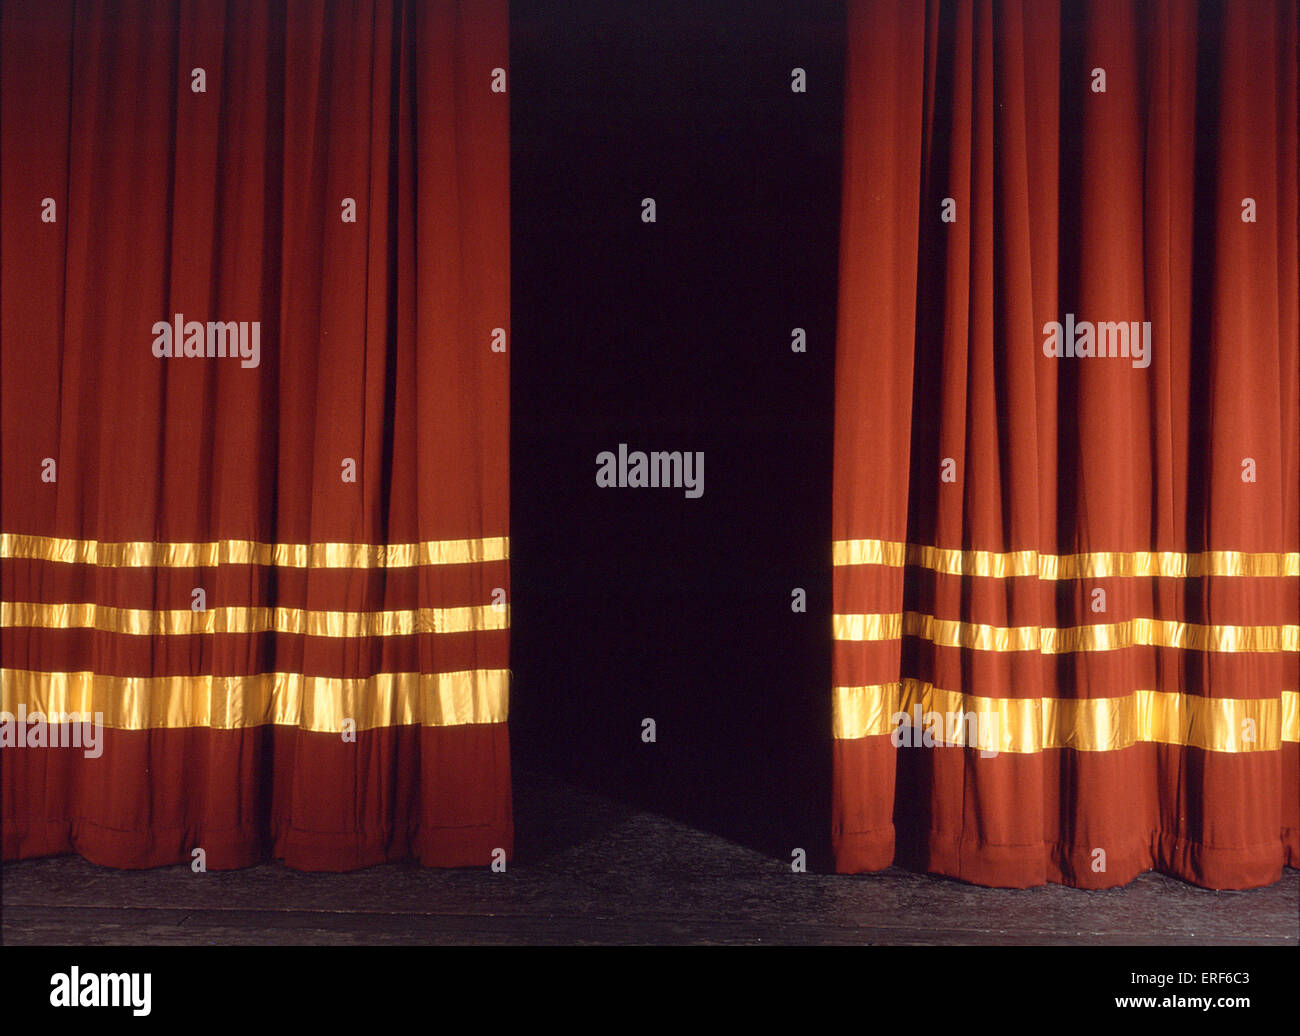 Closed theater curtains -  Stage Curtains Red Velvet With Gold Half Open Stock Photo